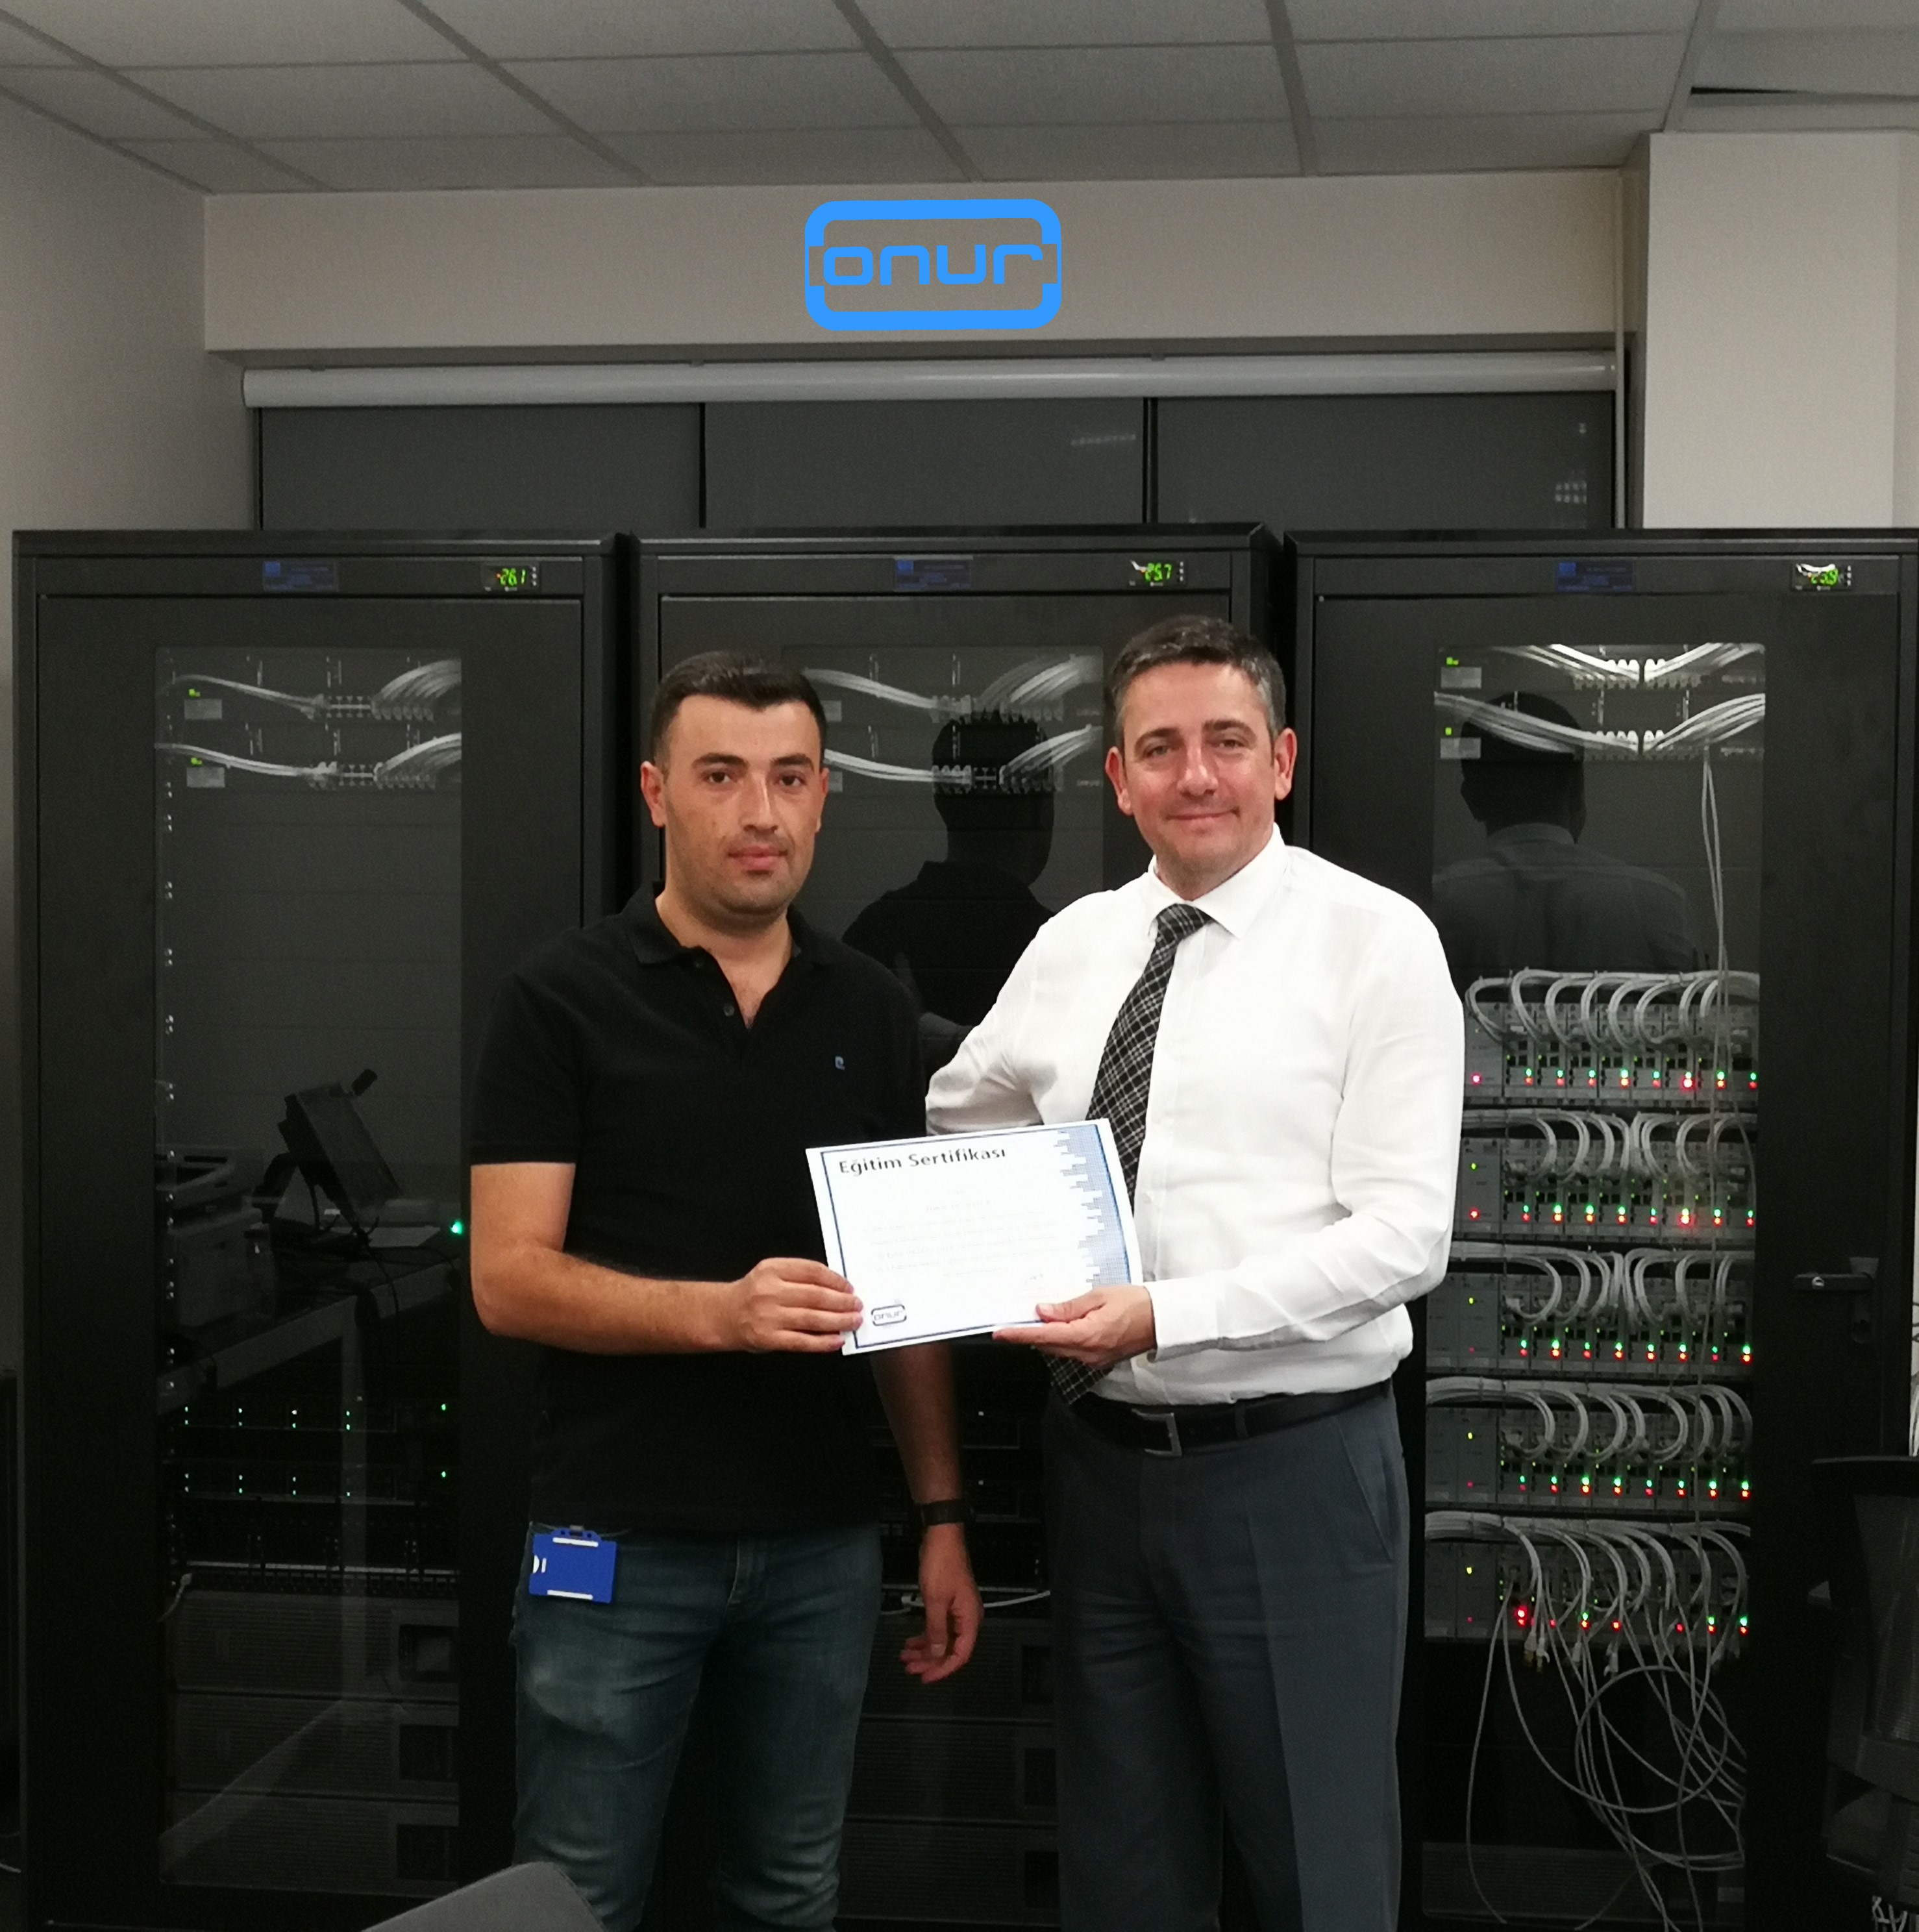 We completed DHMI factory technical training.